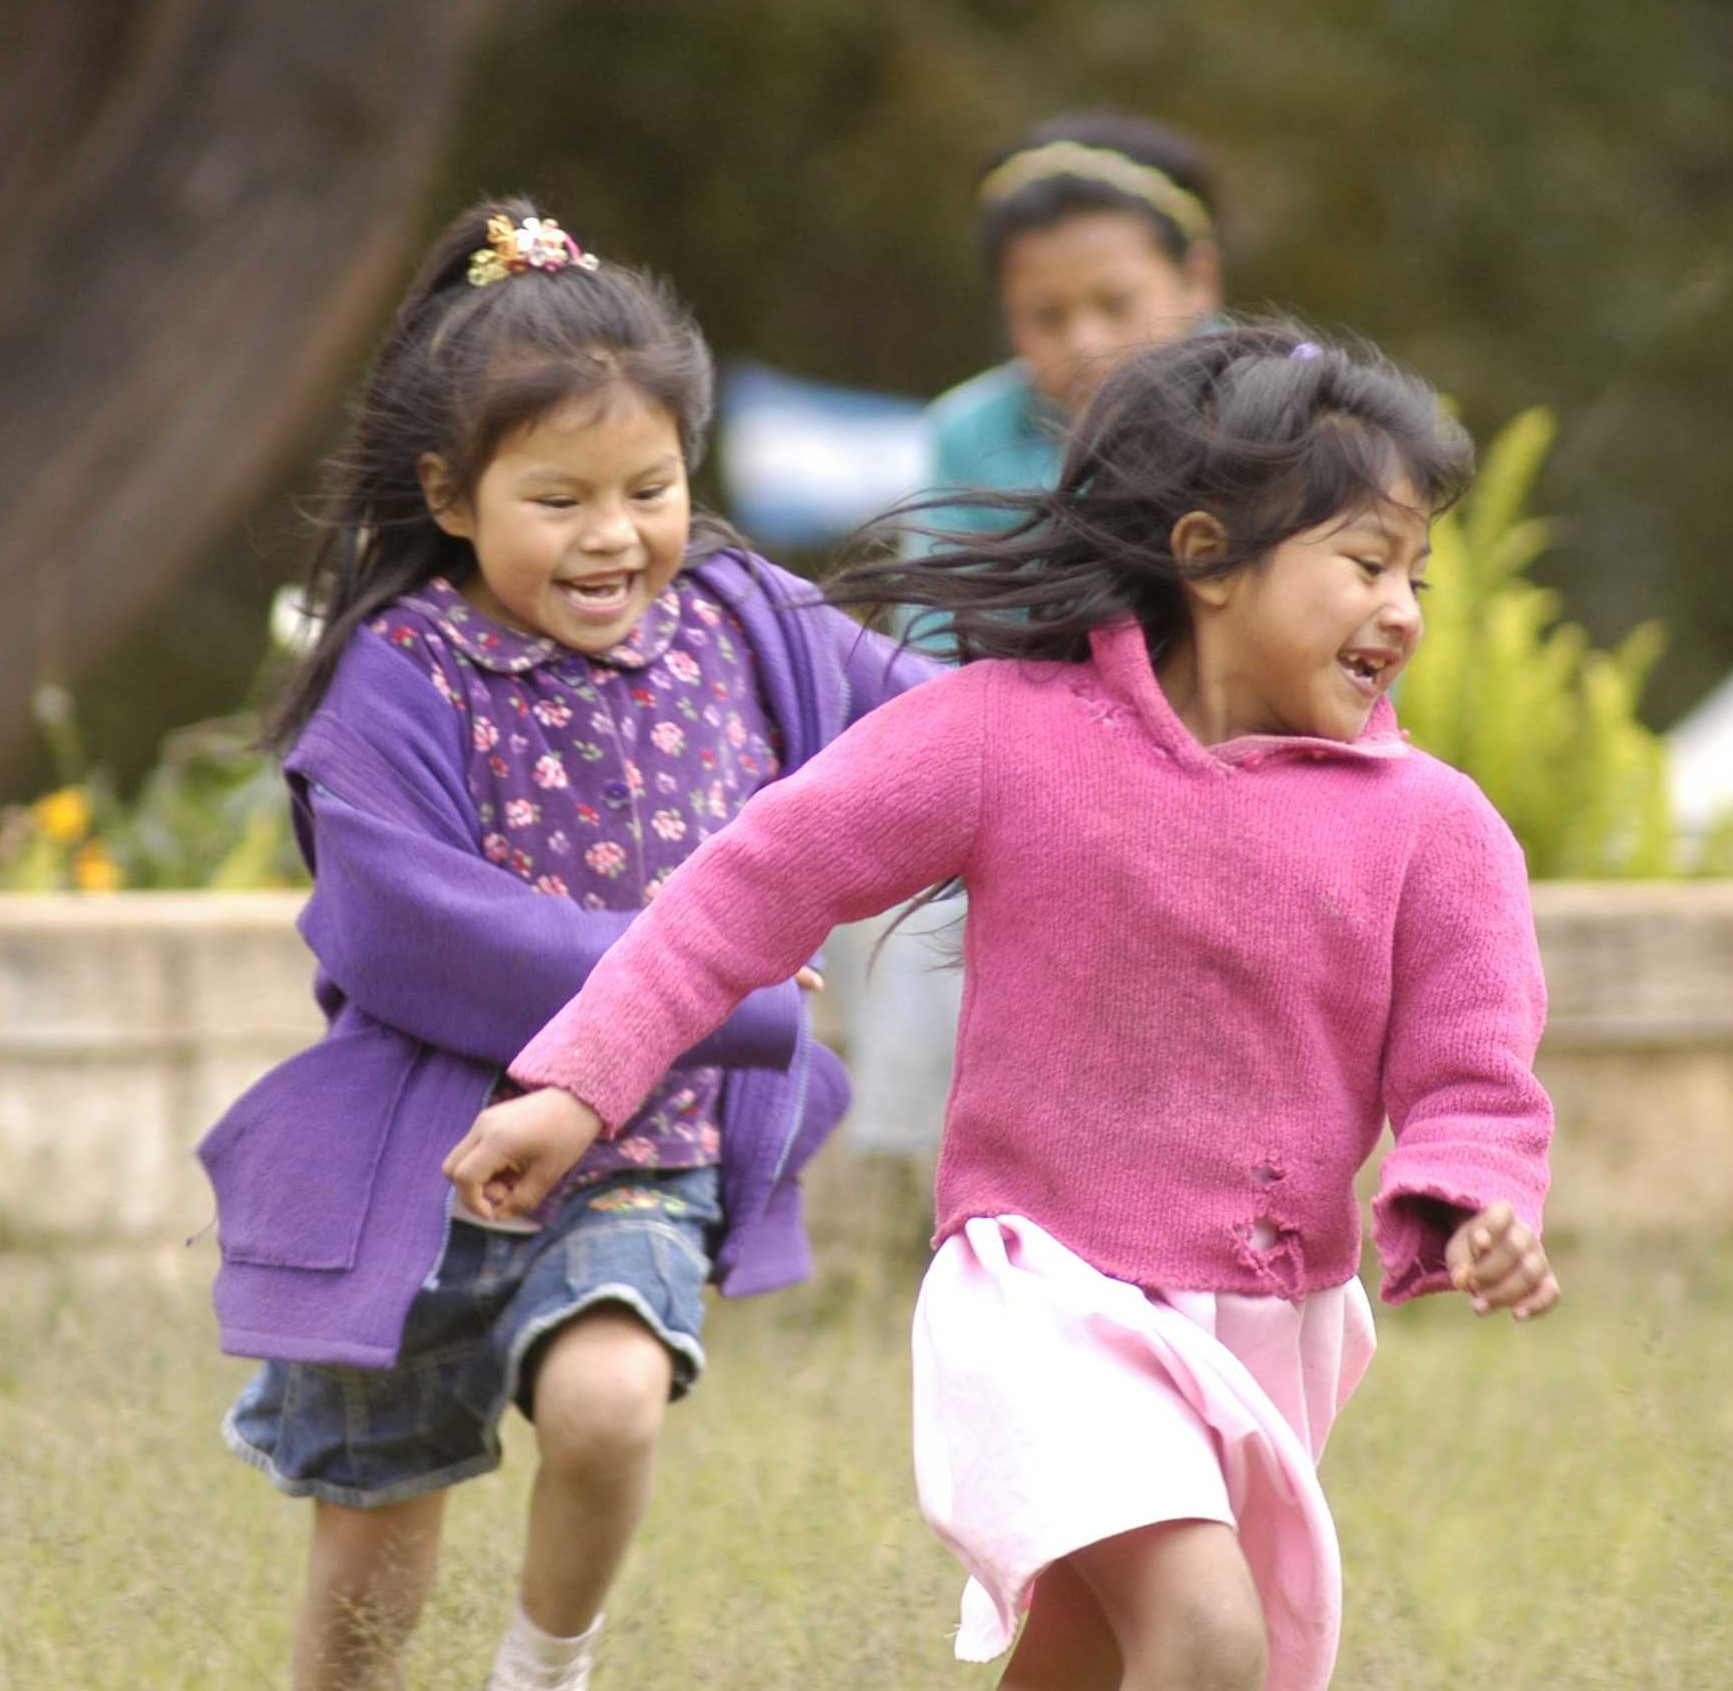 Girls Running – Photo by Paul Martinez, Global Partnership for Education,